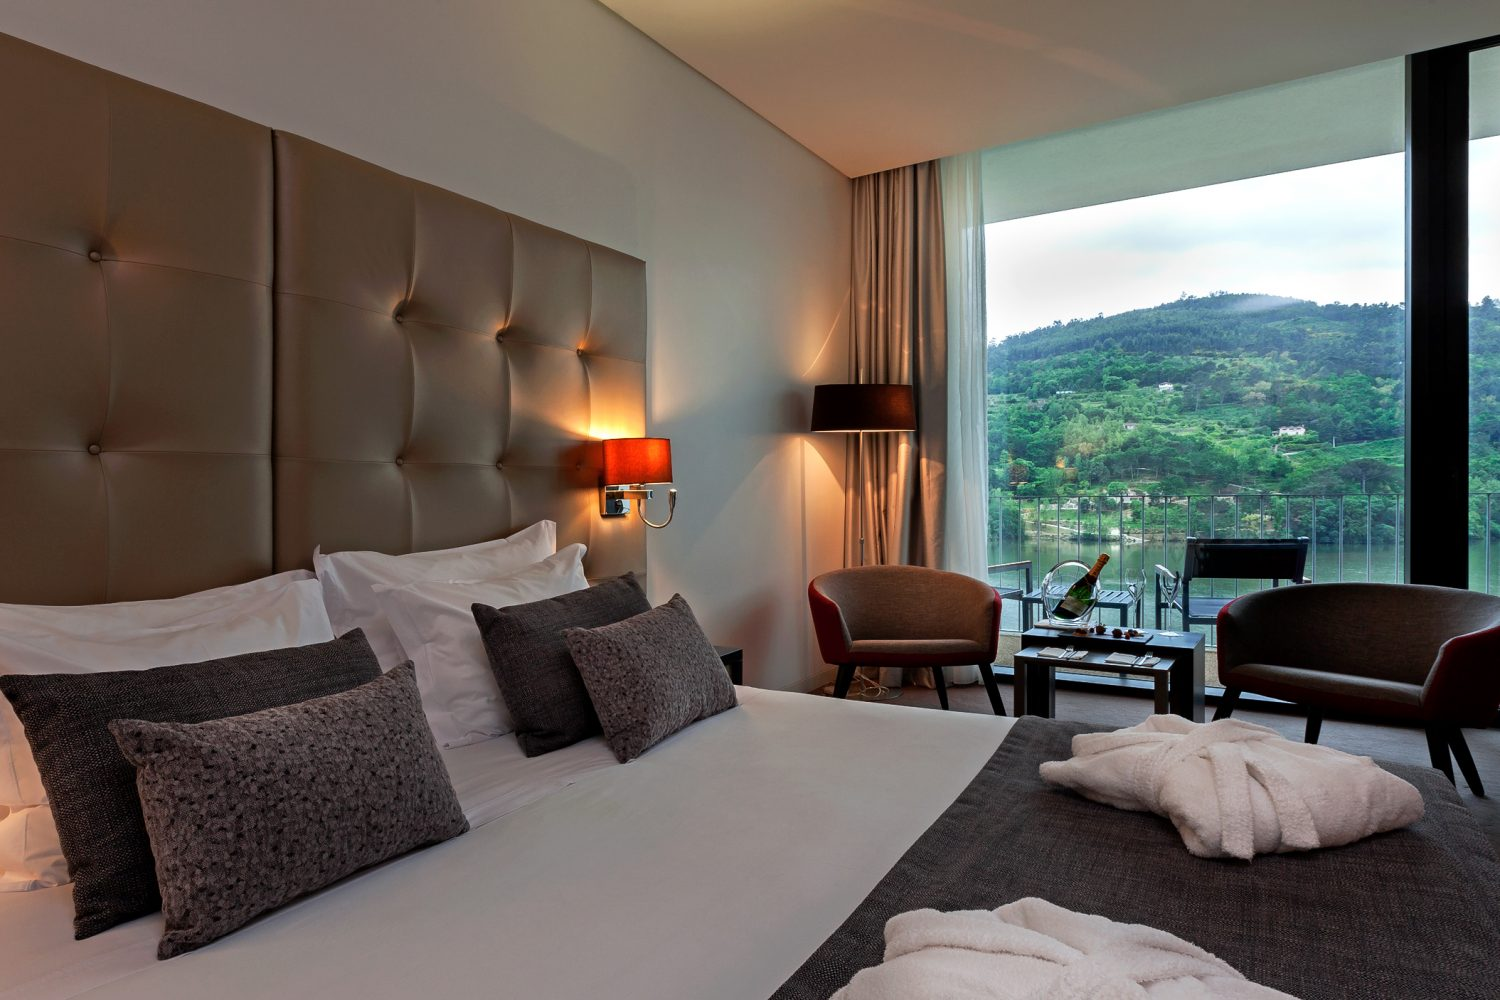 Standard Room at the Douro Royal Valley Hotel and Spa